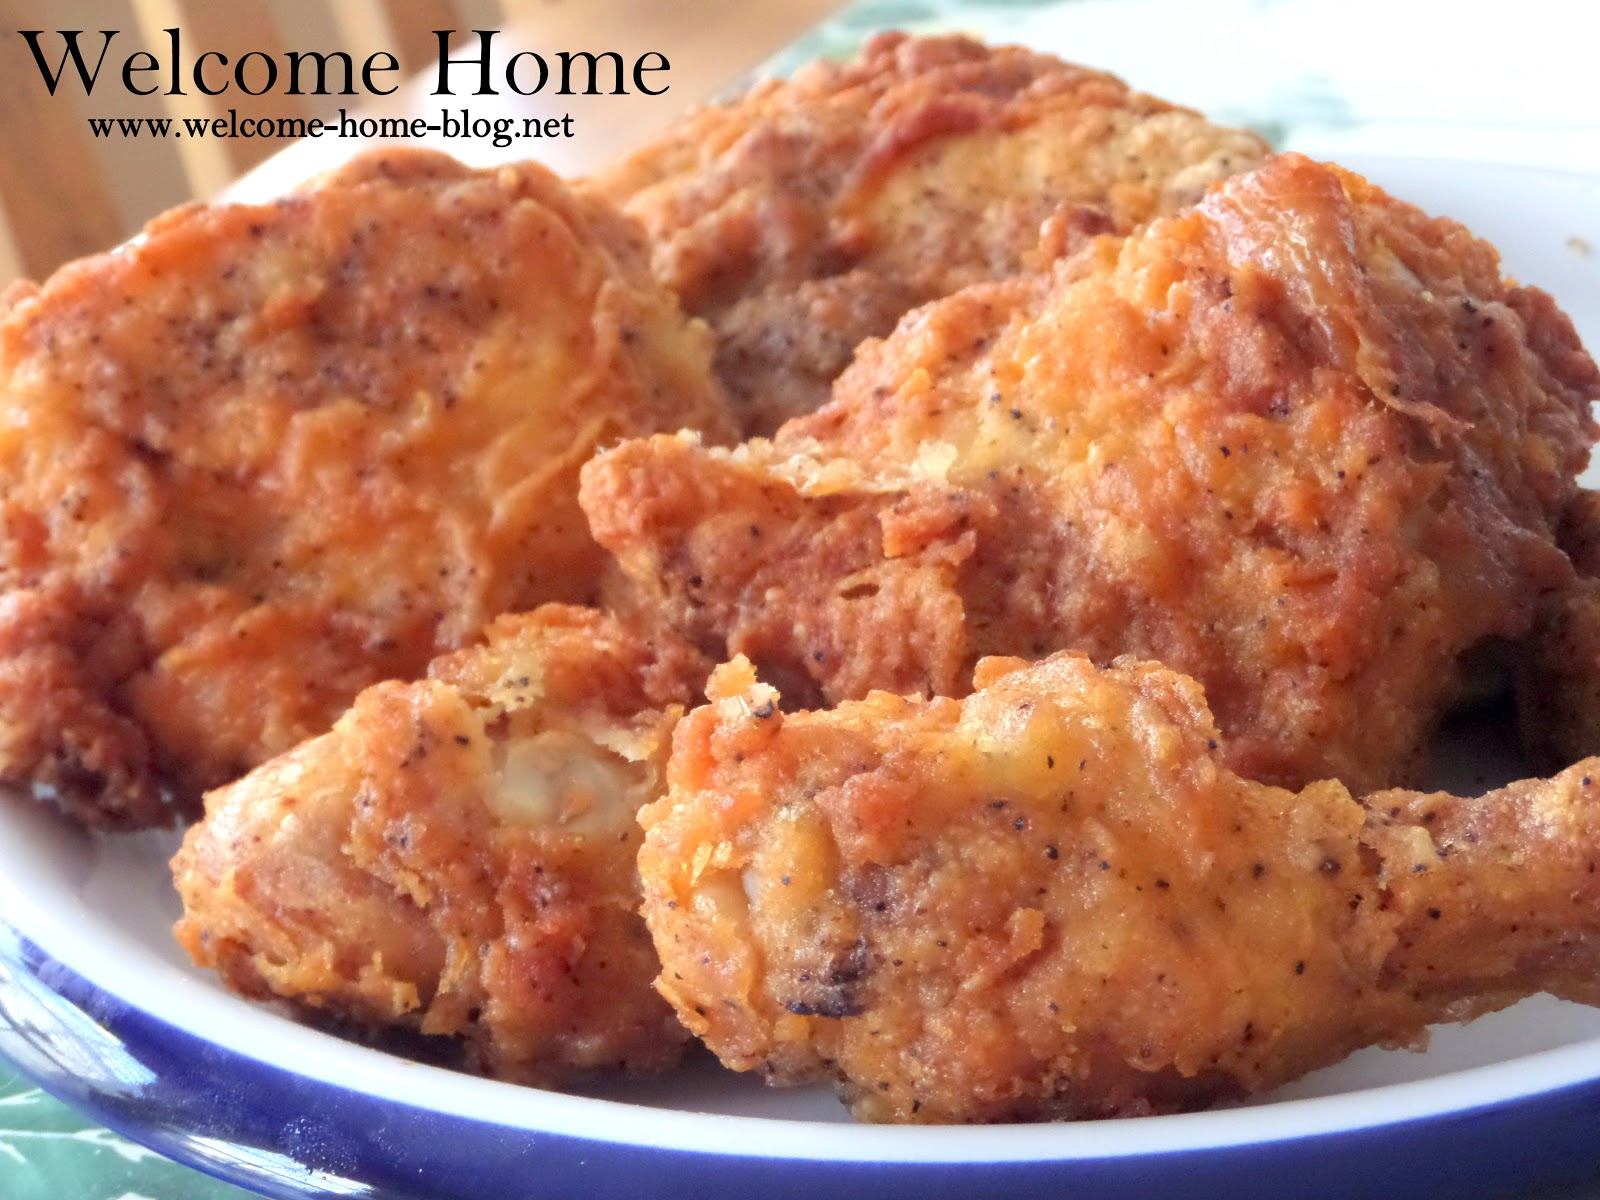 Welcome Home Blog: Mom's Southern Fried Chicken